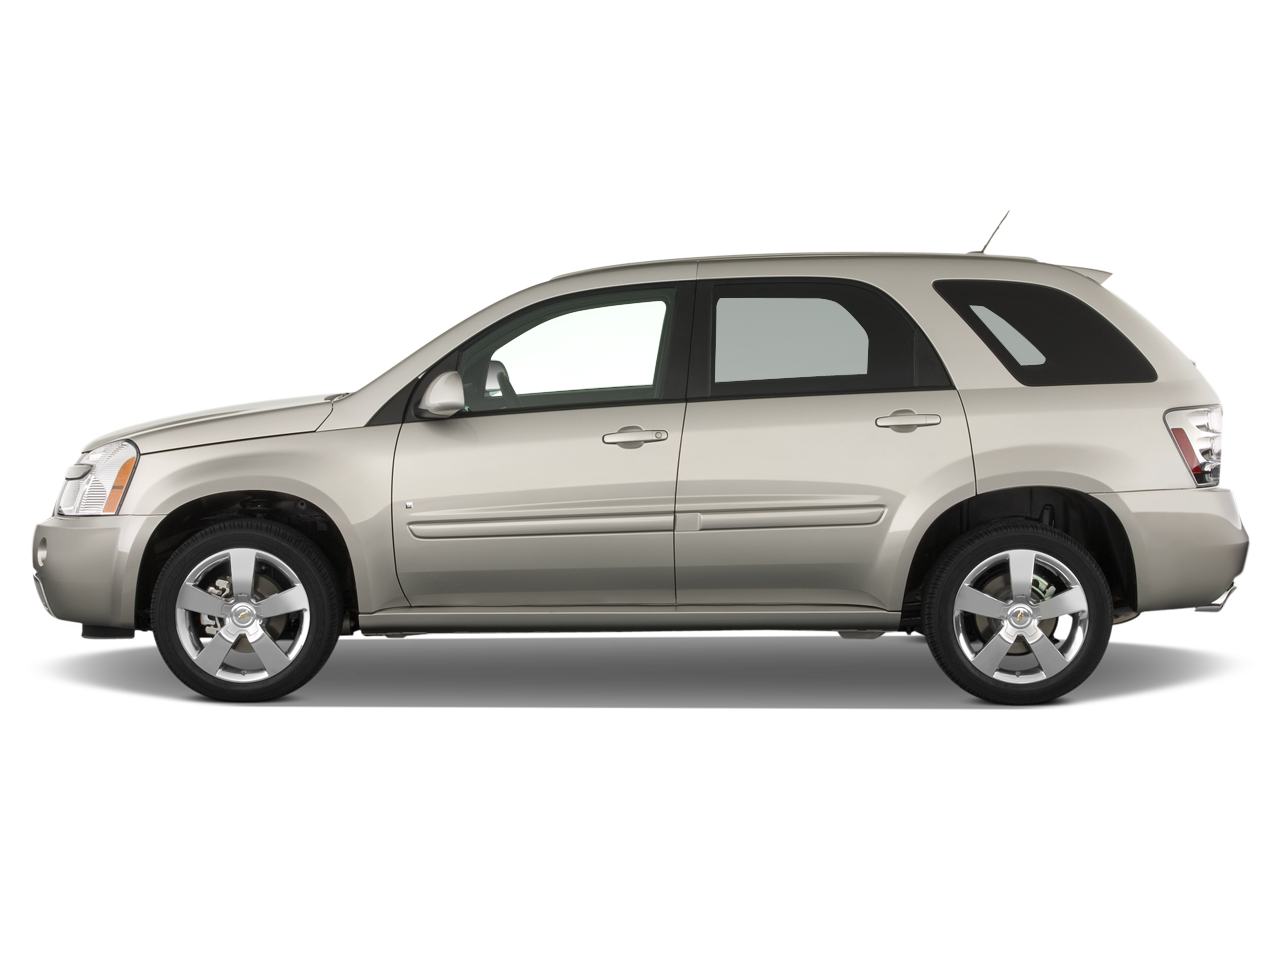 Equinox 2008 chevy equinox : 2008 Chevy Equinox Fuel Cell Diary - Day Five - Latest News ...